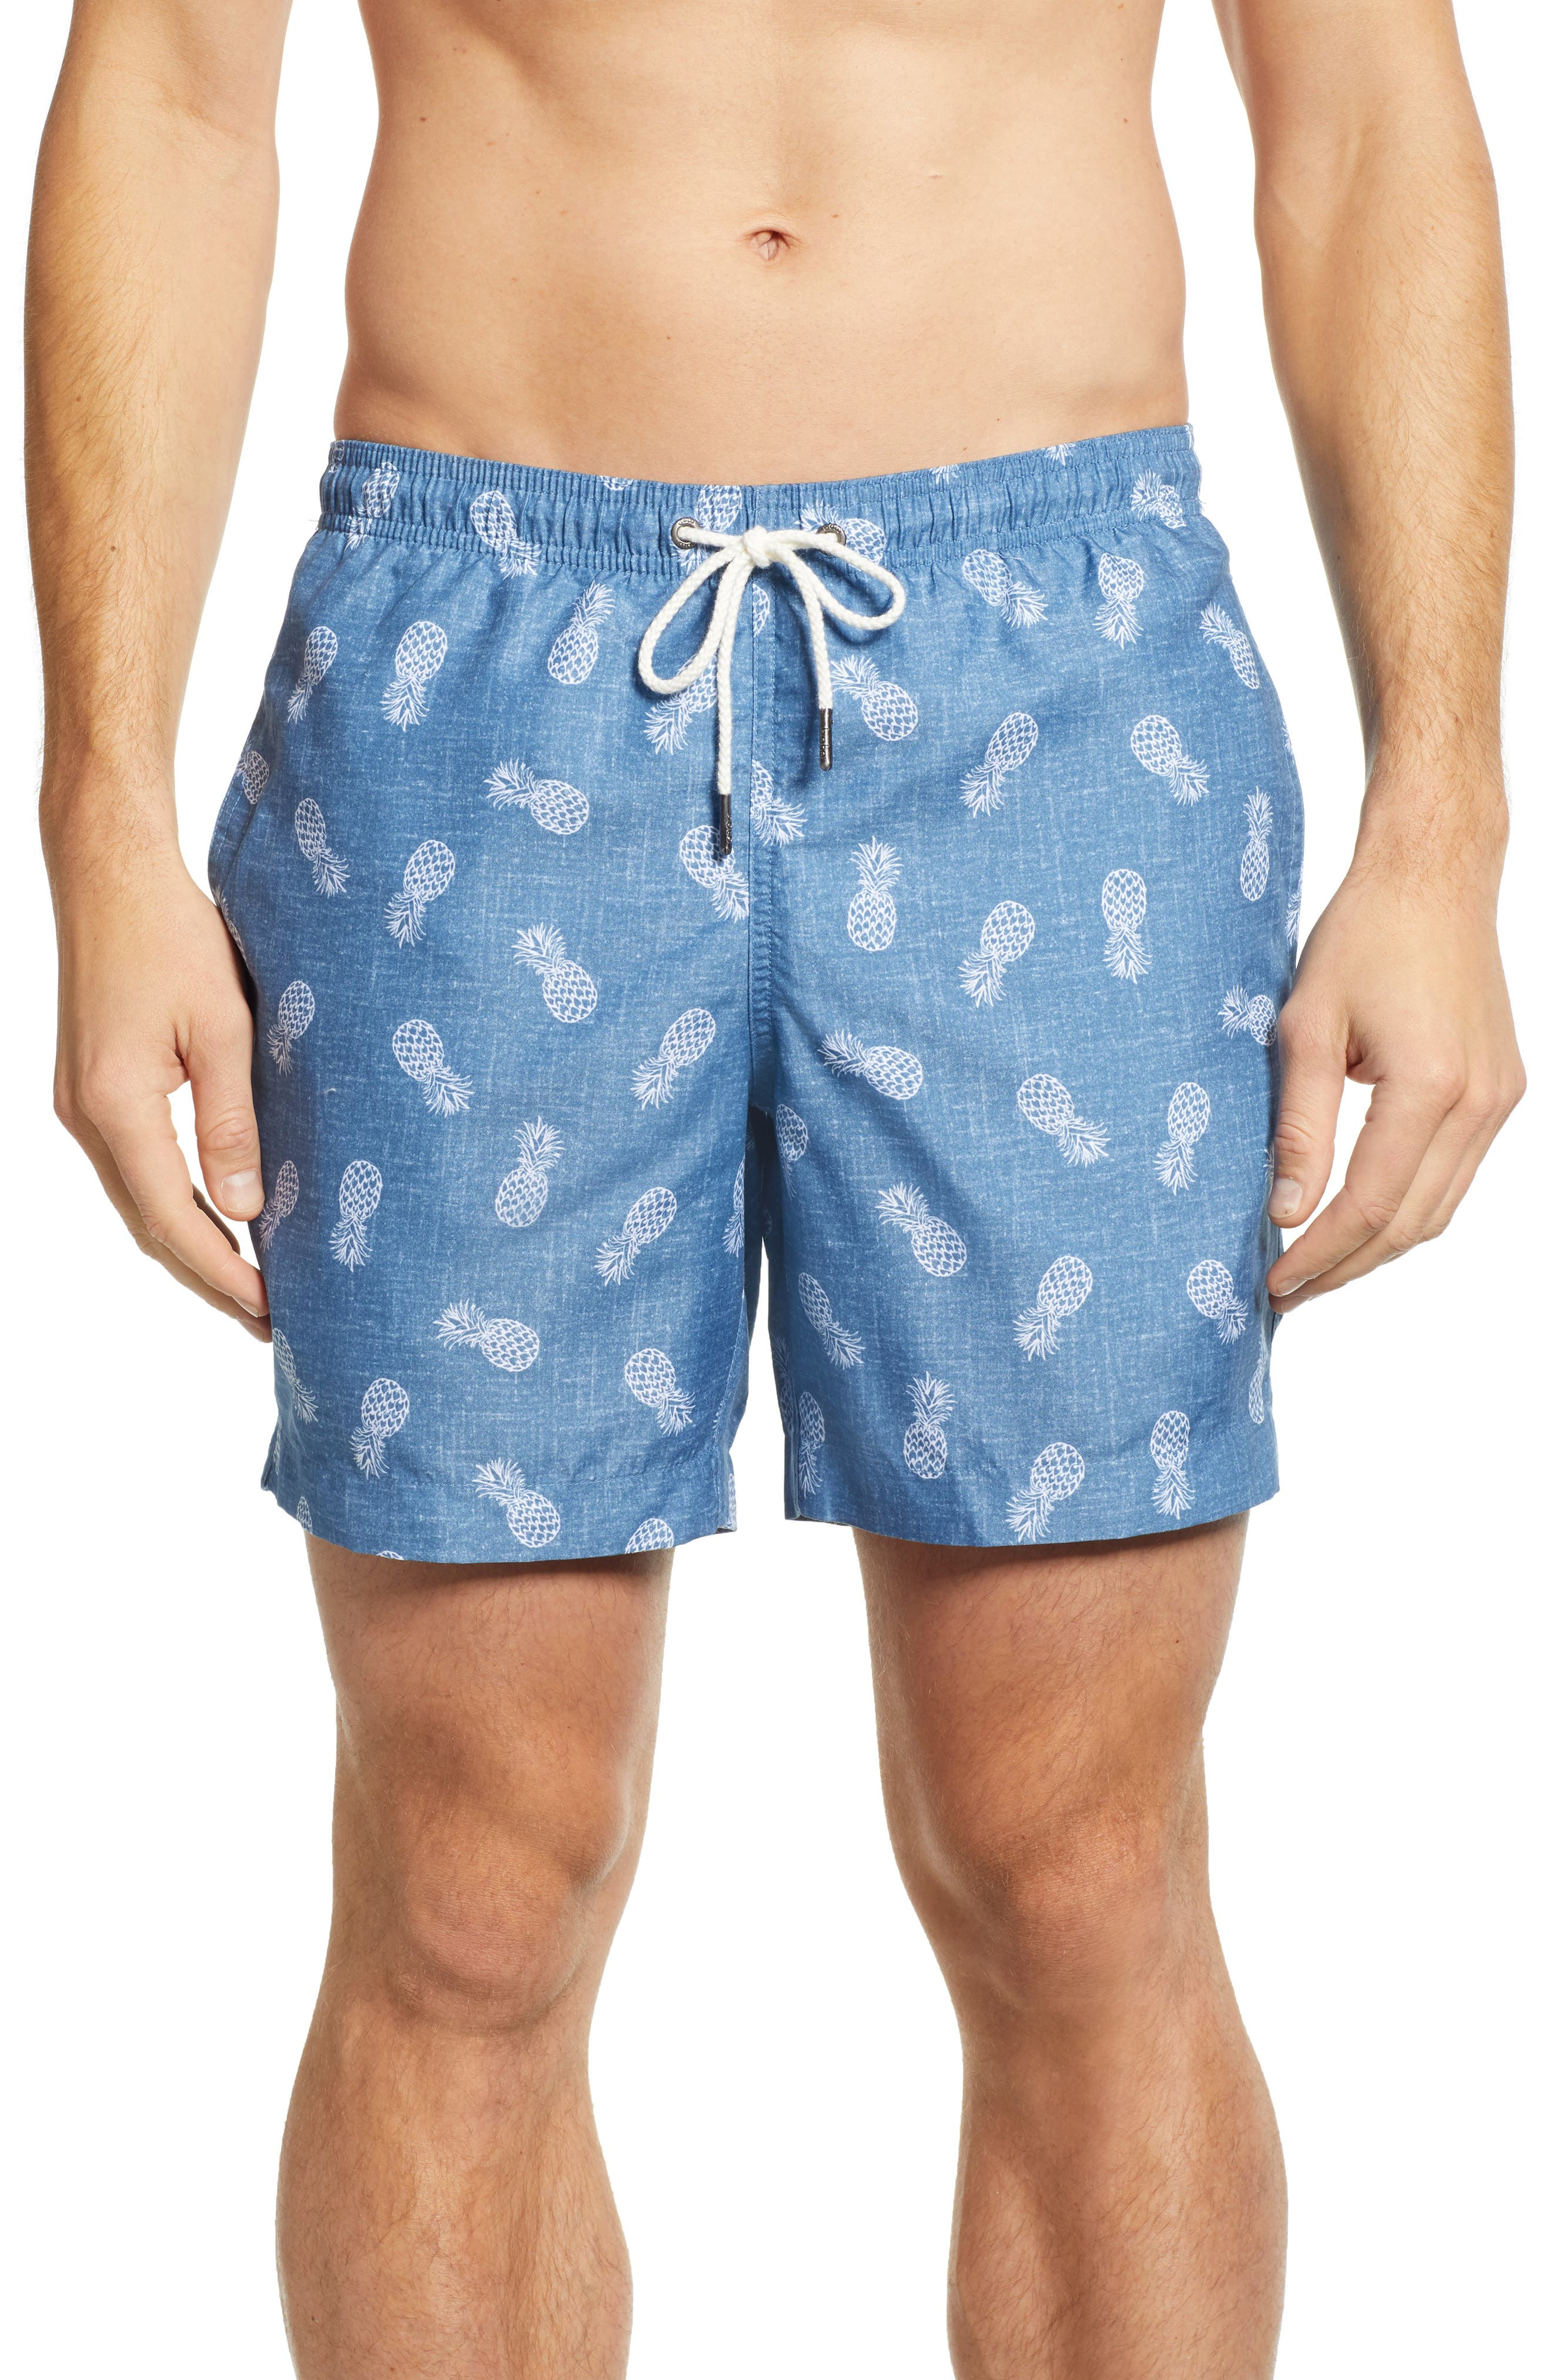 Cabo Pineapples 6.5 Inch Swim Trunks, Main, color, 402